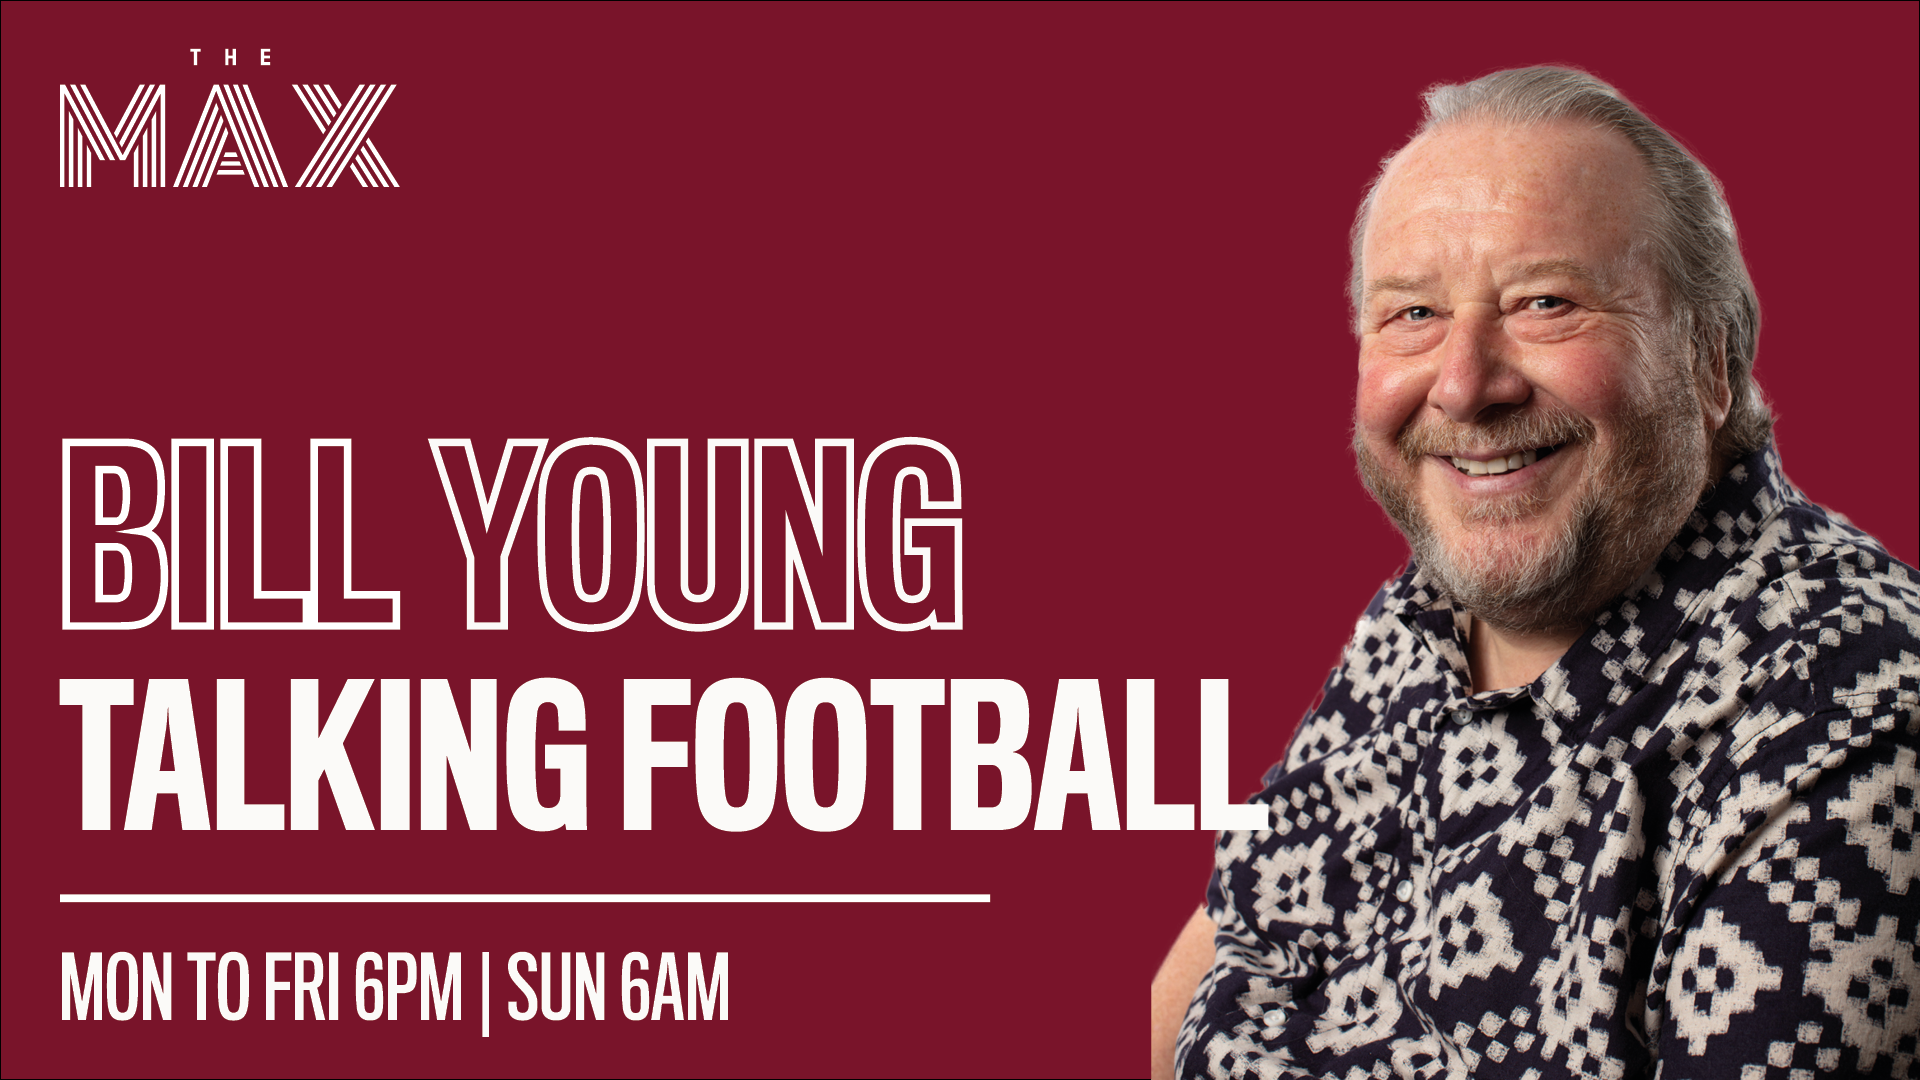 Talking Football with Bill Young - Tuesday 2nd March